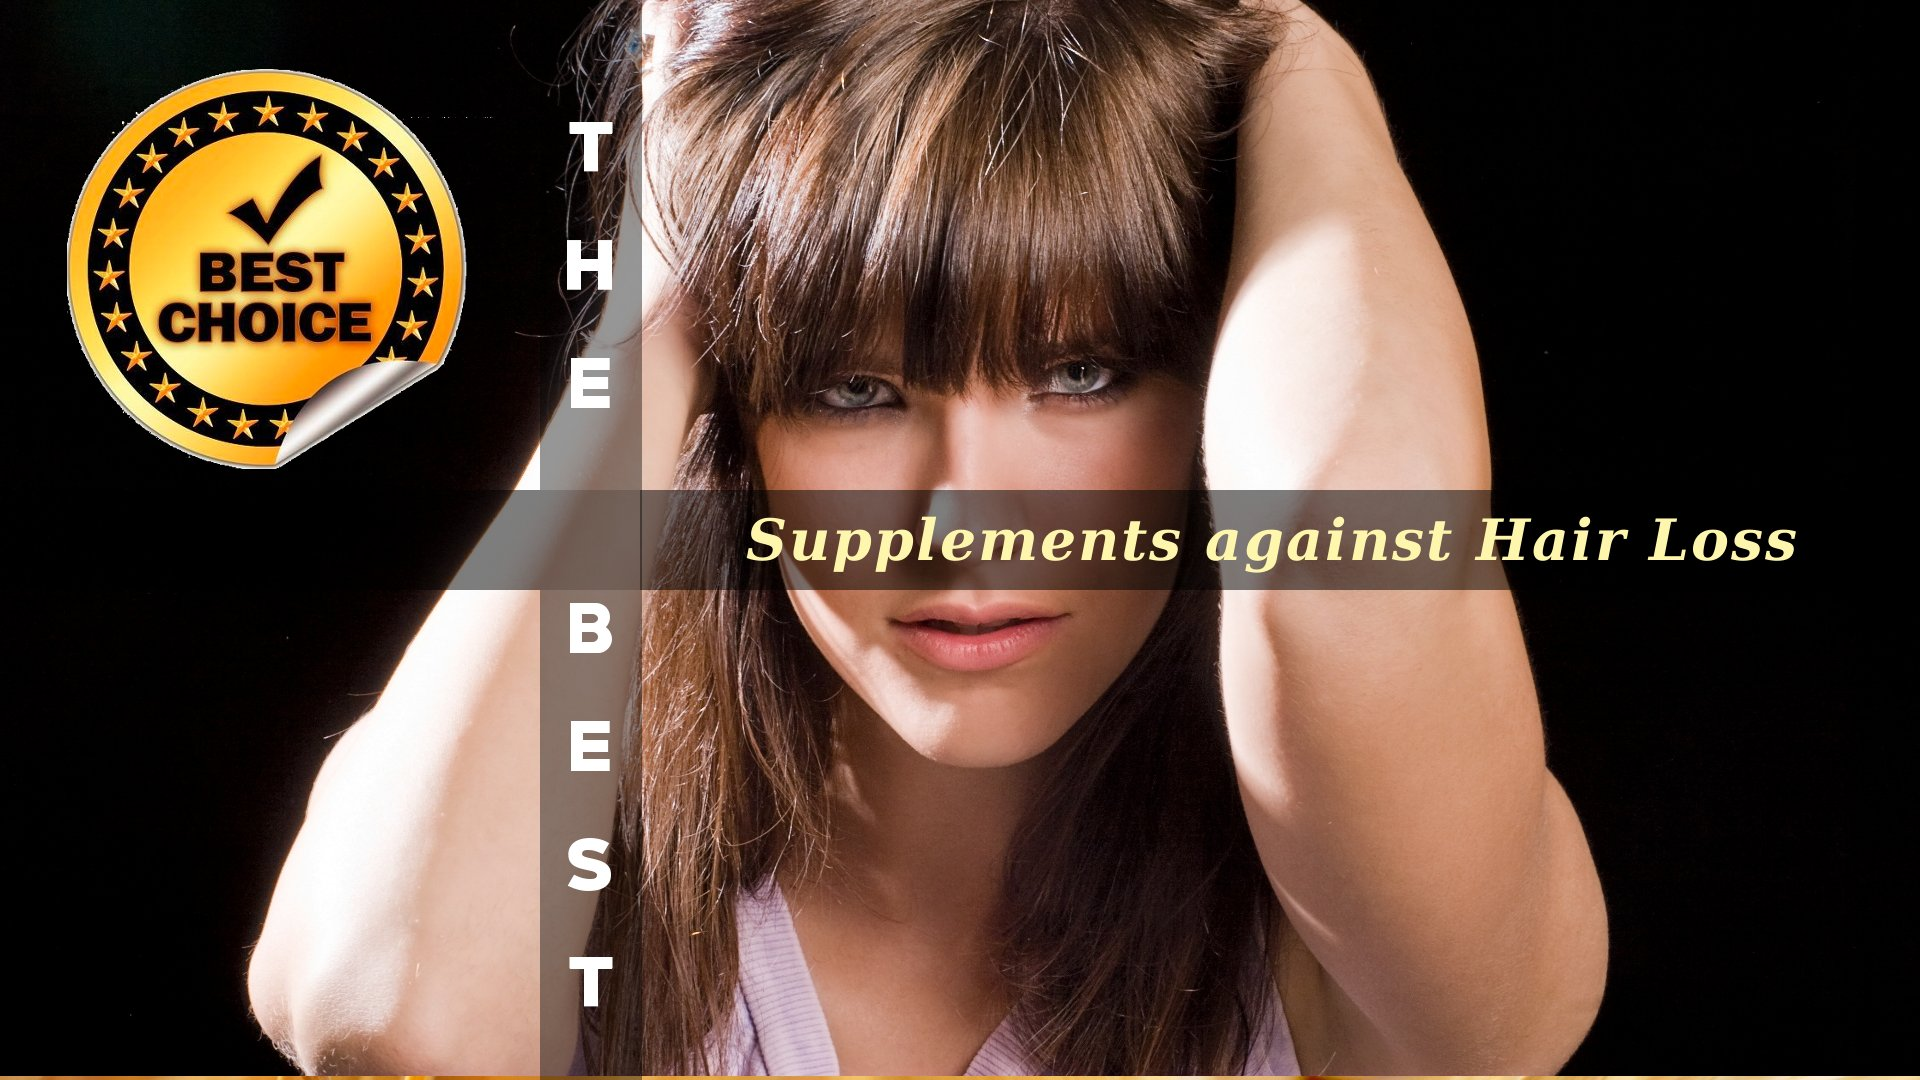 The Supplements against Hair Loss